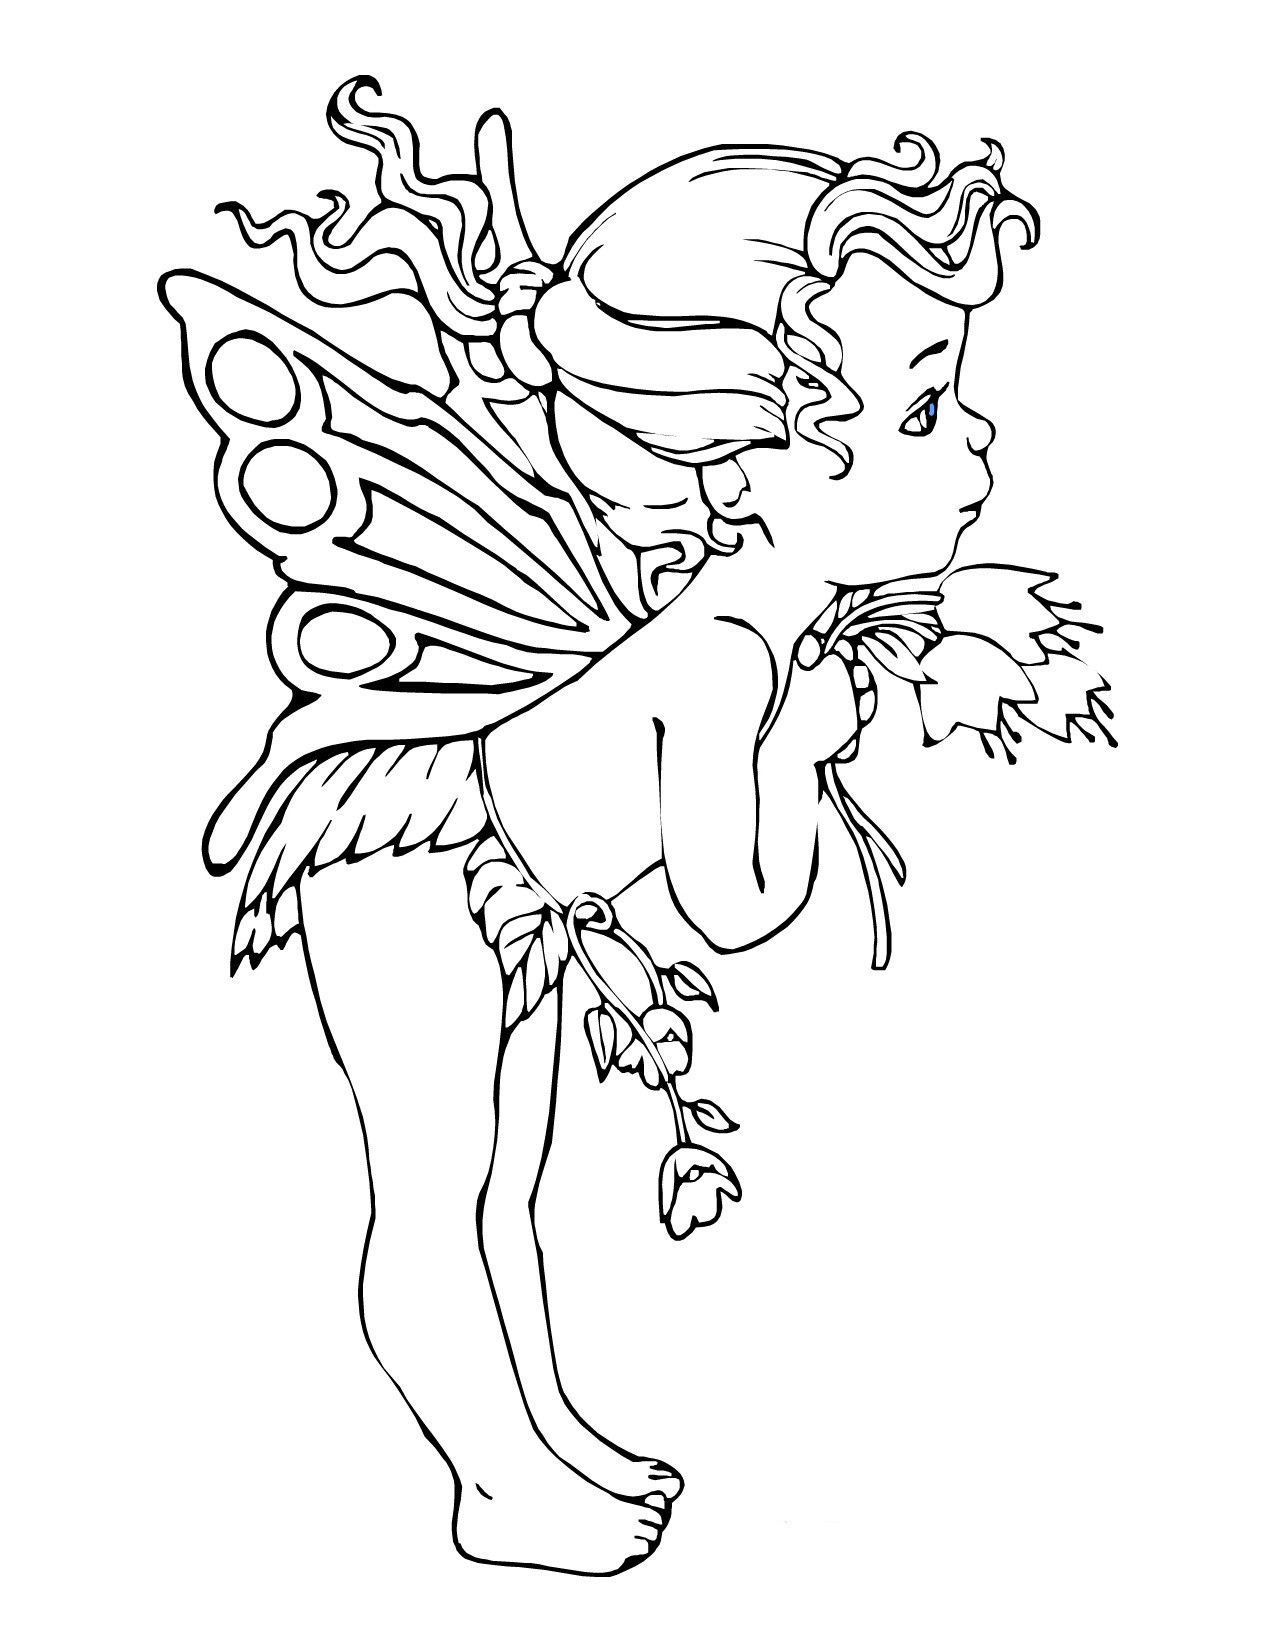 Printable Fairy Coloring Pages For Adults  Free Printable Fairy Coloring Pages For Kids